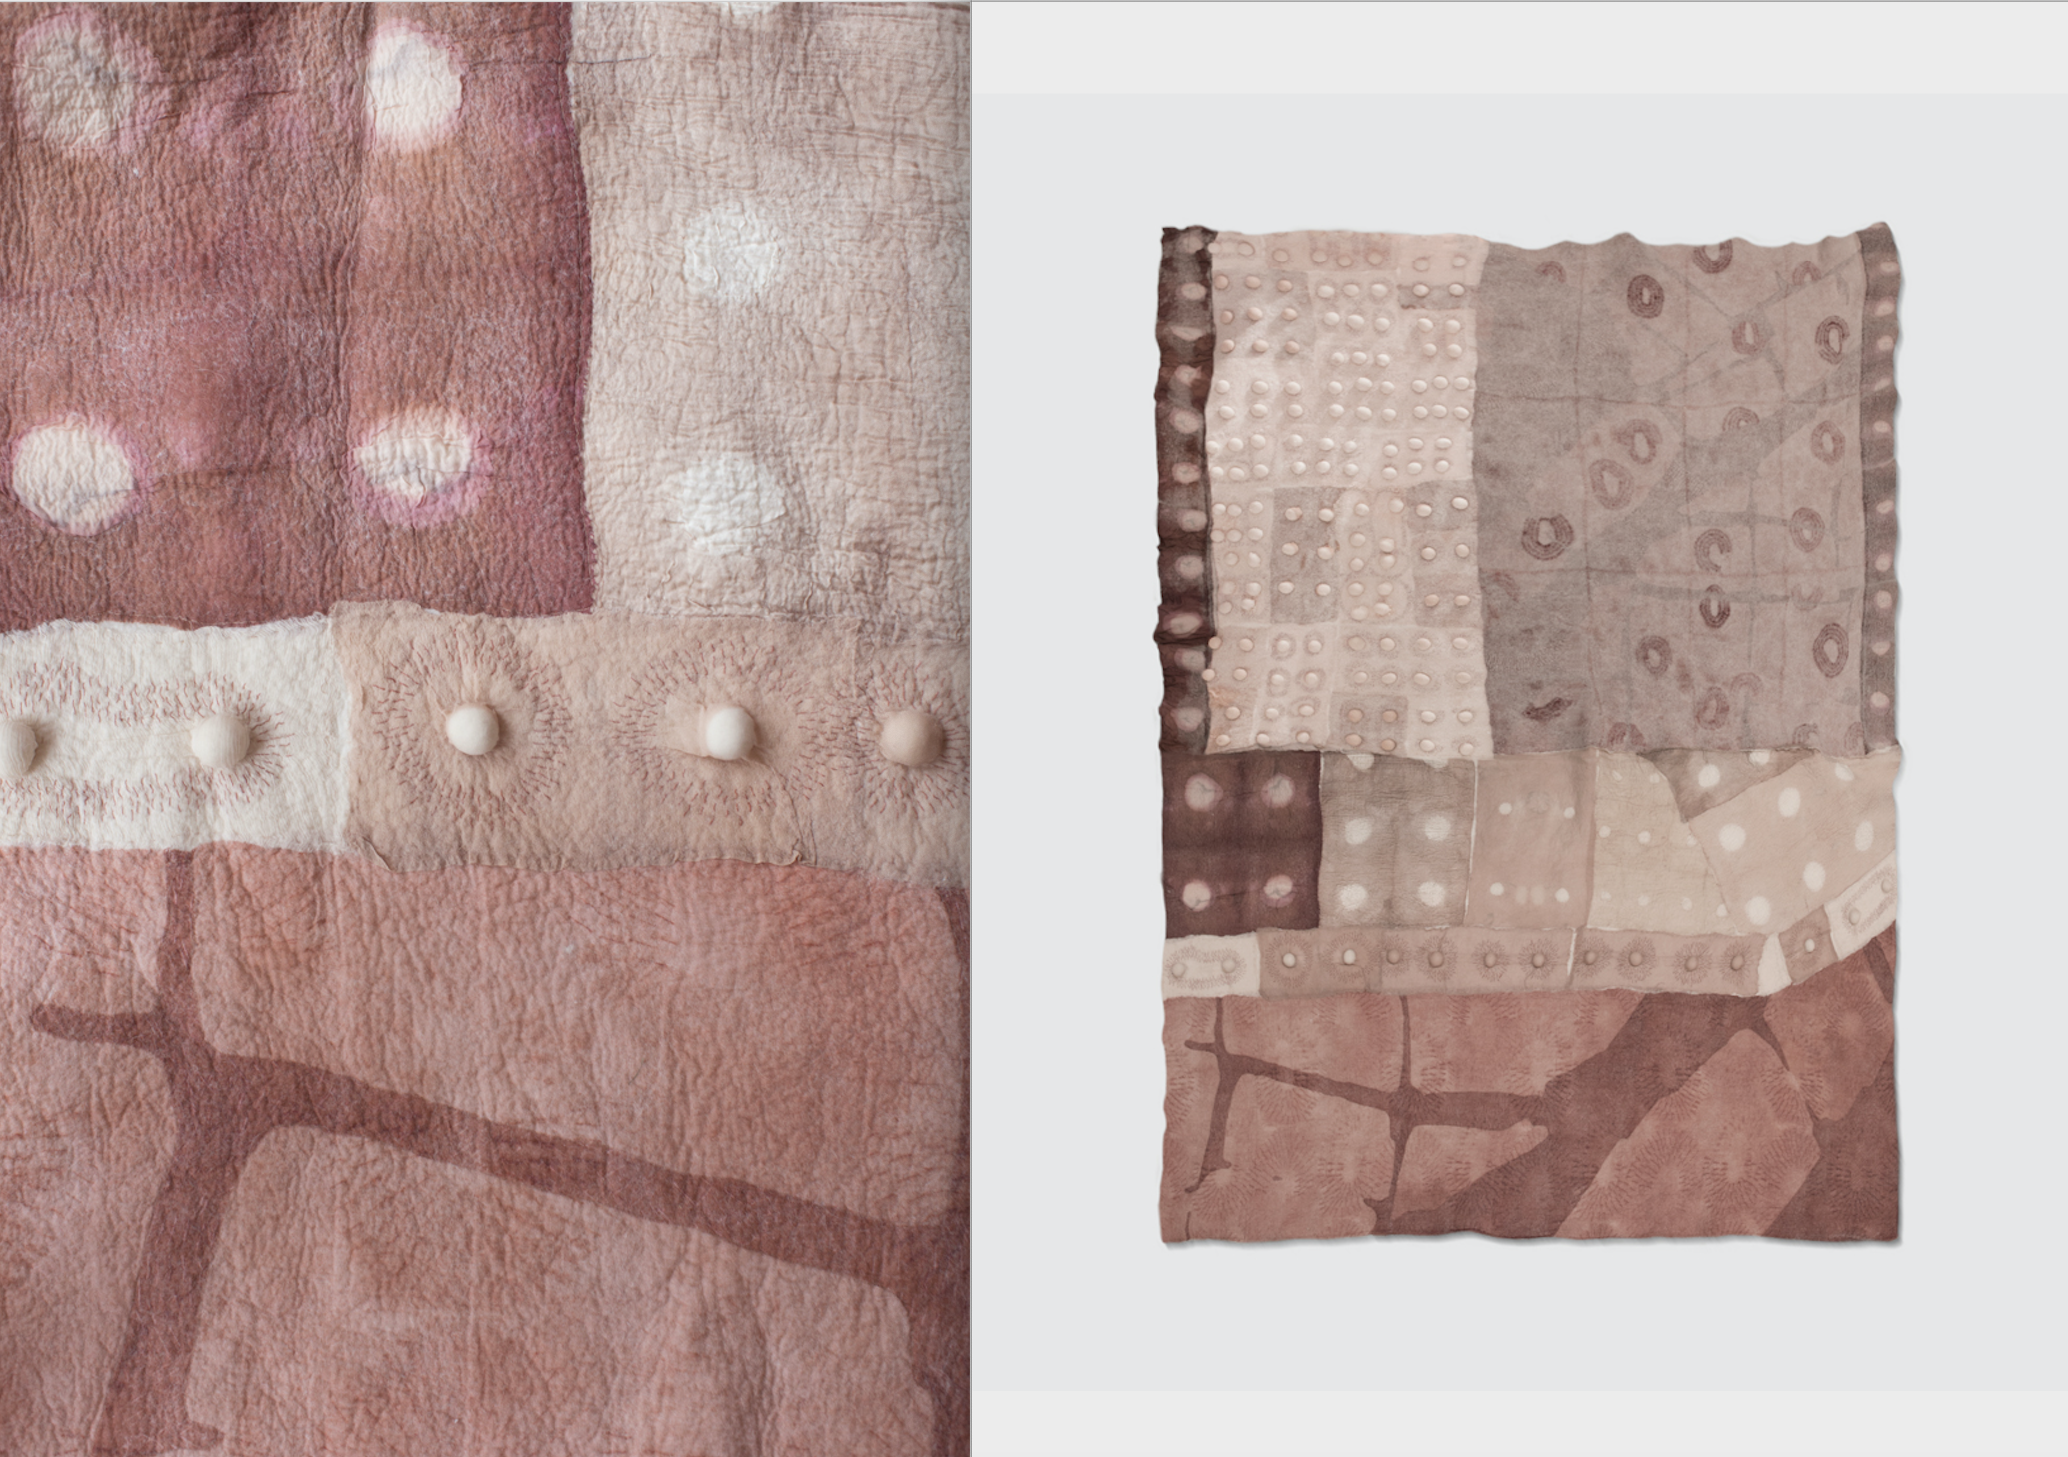 Detail and full quilt in earthy pinks, apricots, and warm browns made by Emma Peters